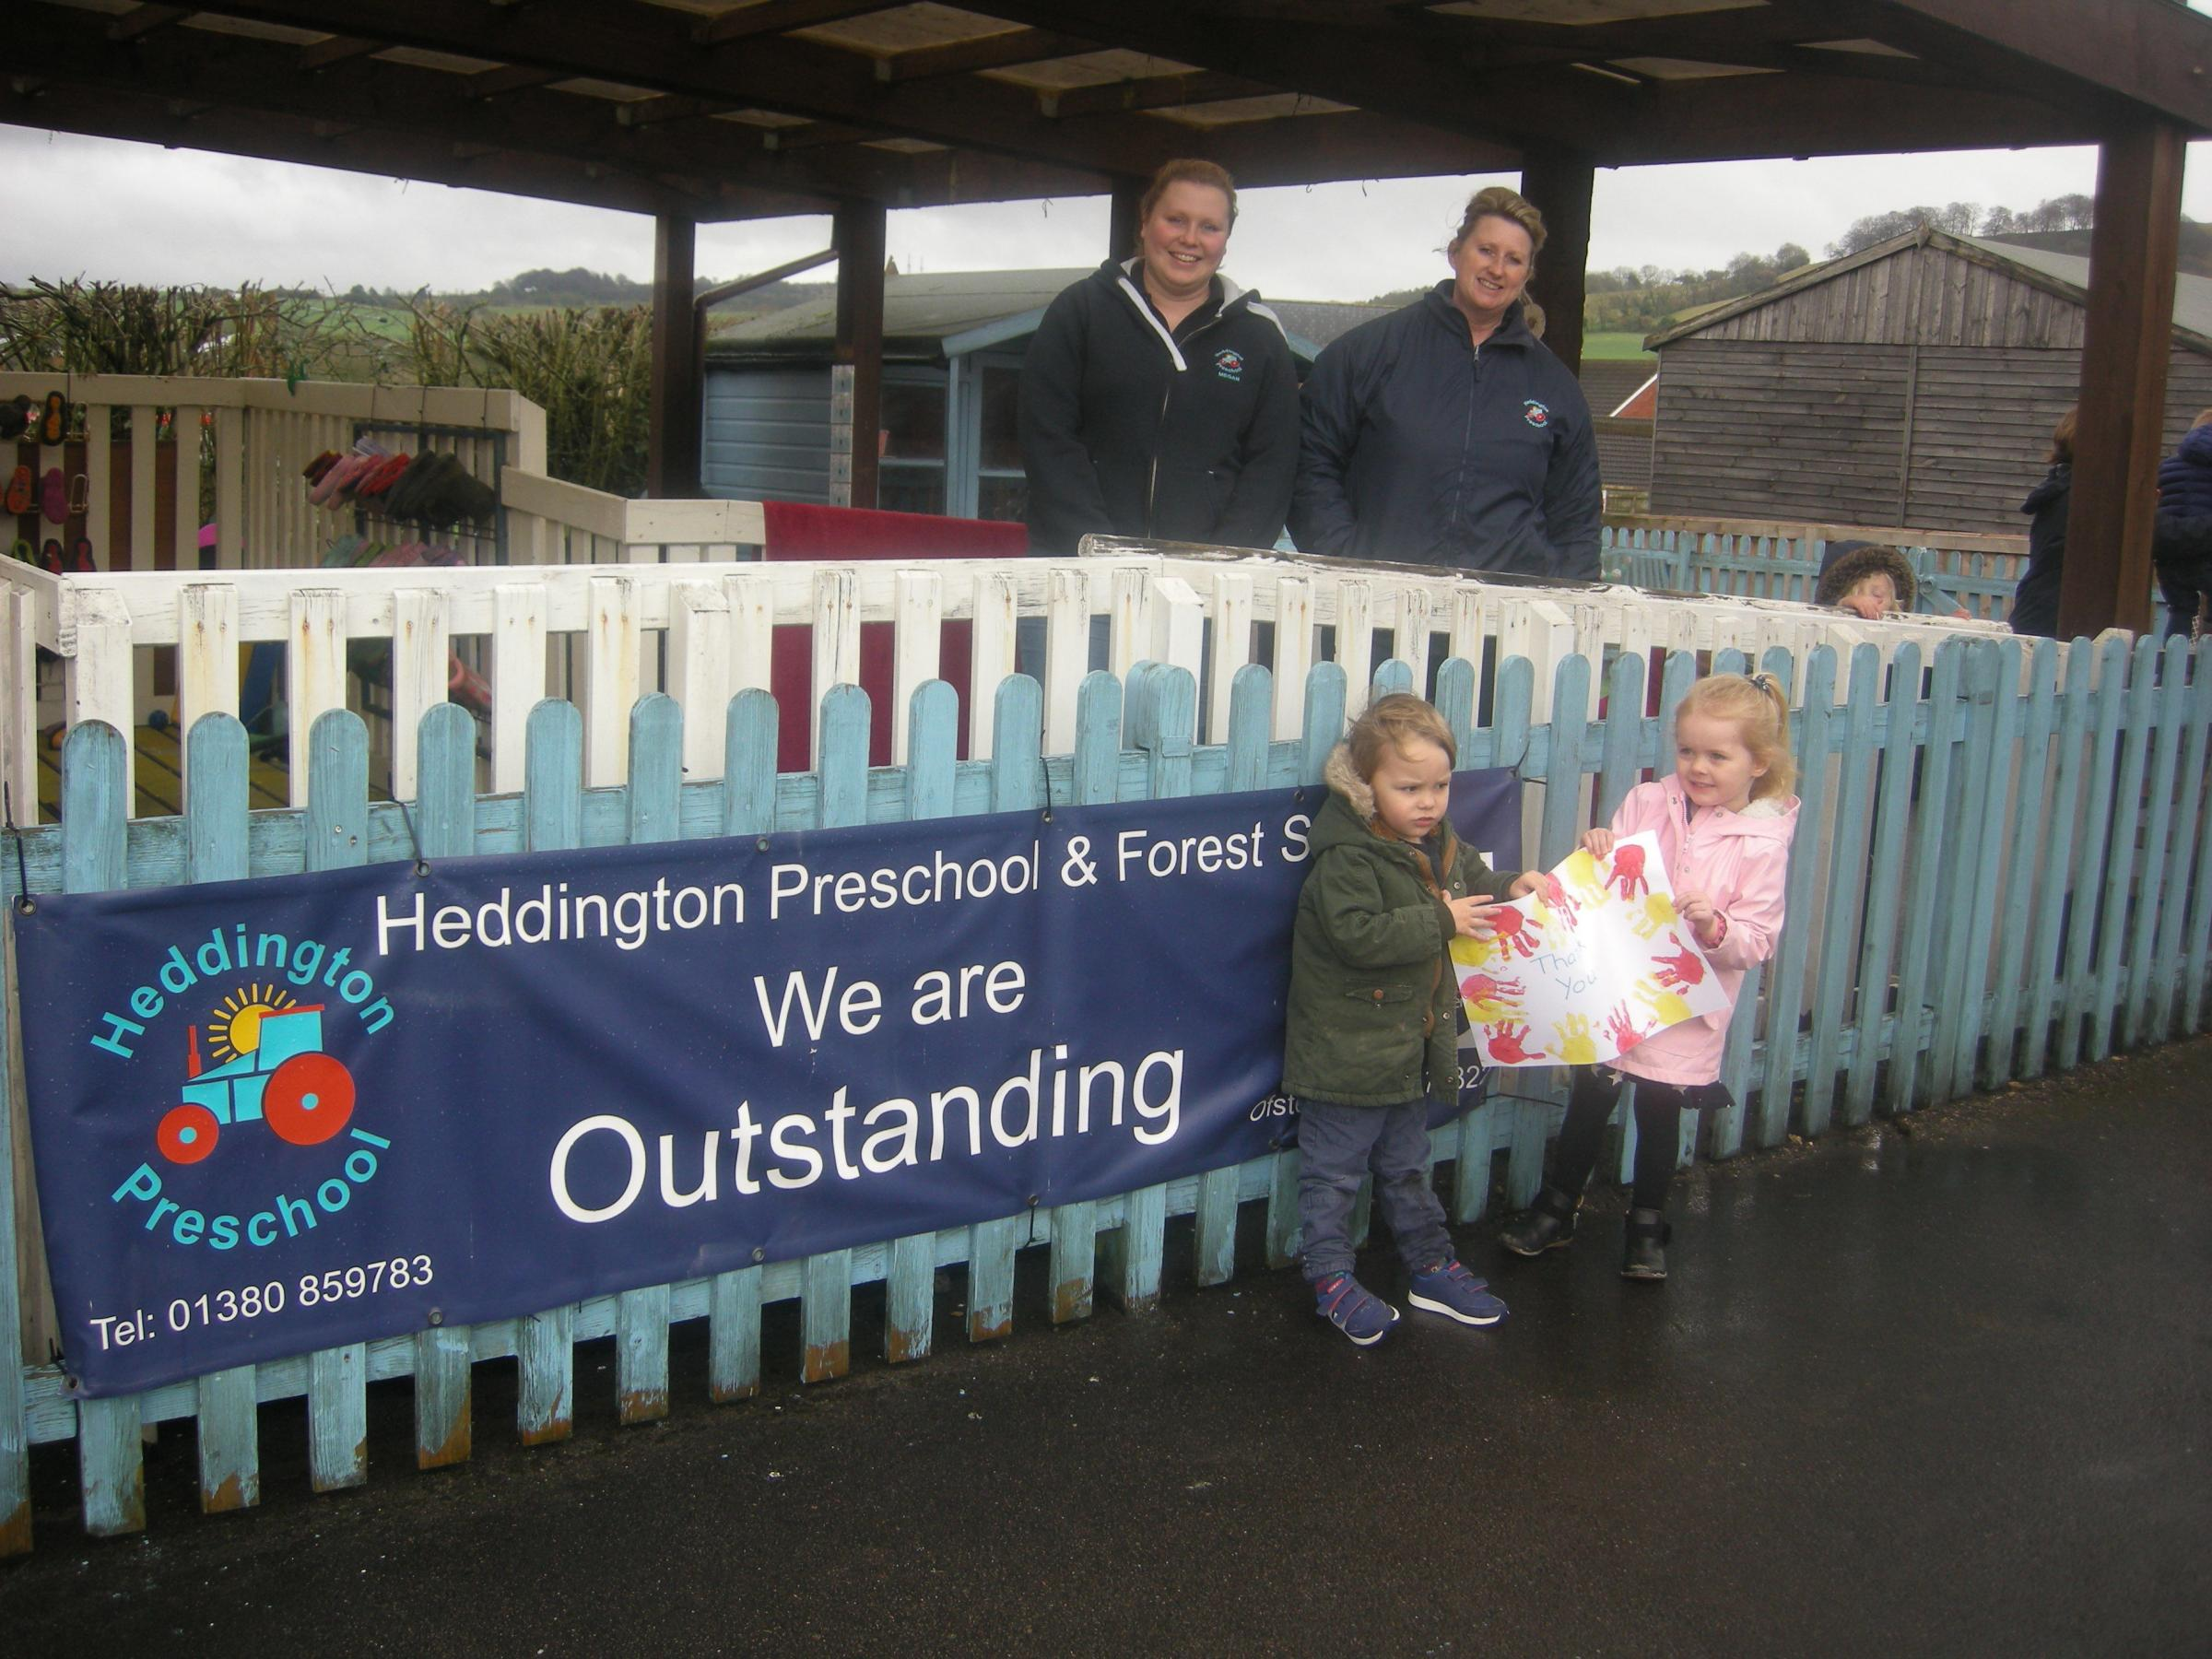 The preschool received a cheque for £1,000